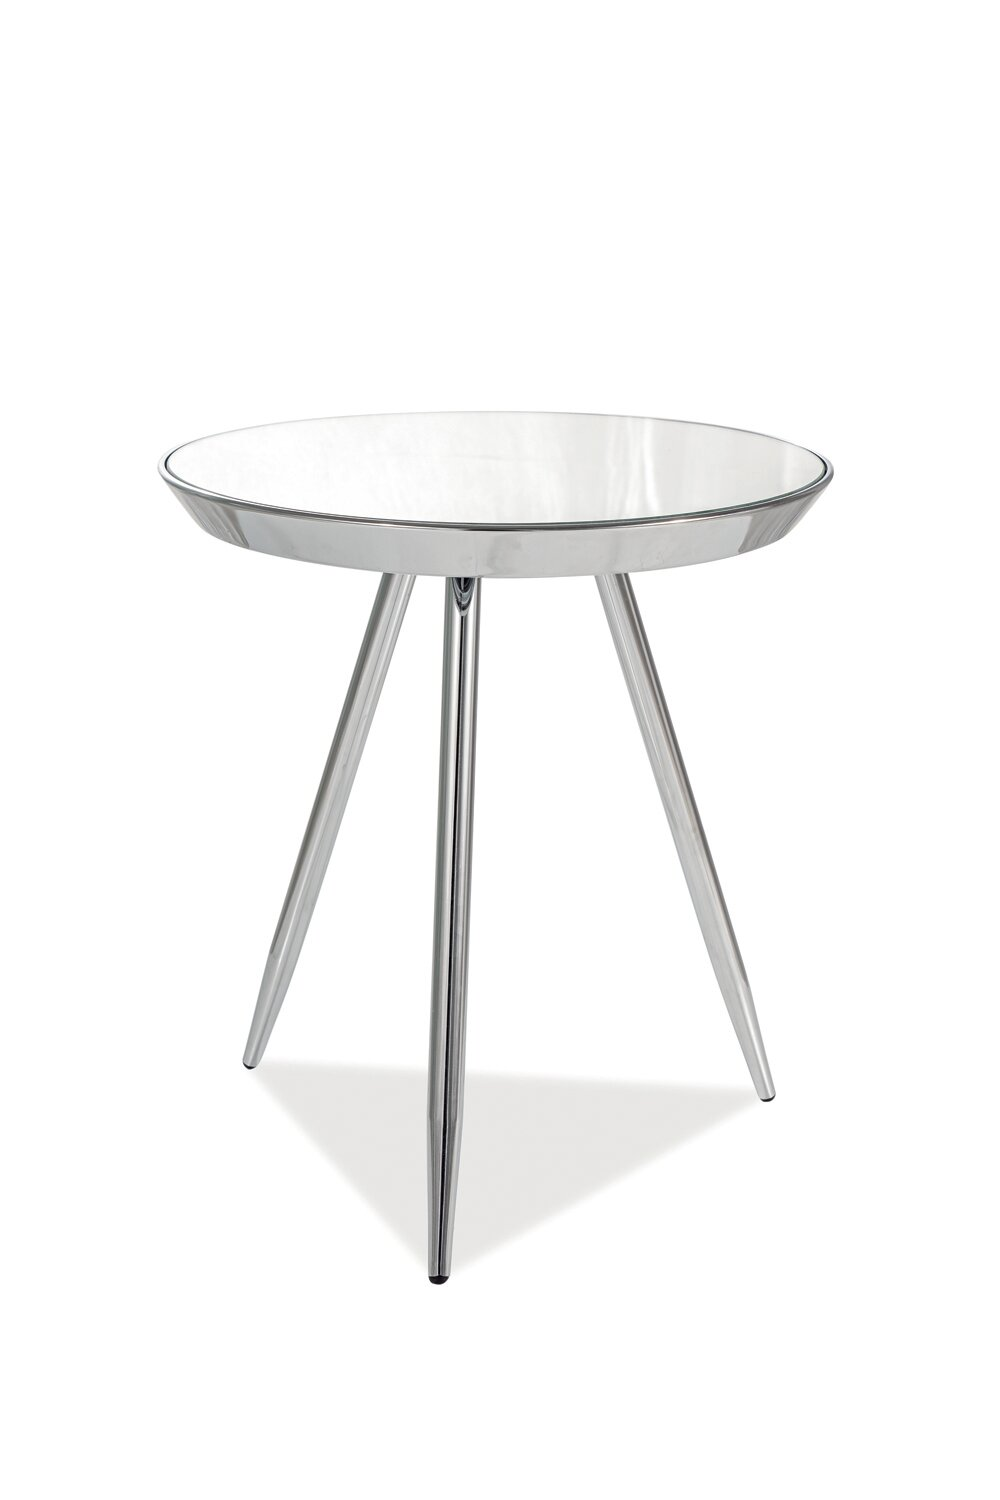 Small Under 50cm Mirrored Coffee Tables You Ll Love Wayfair Co Uk